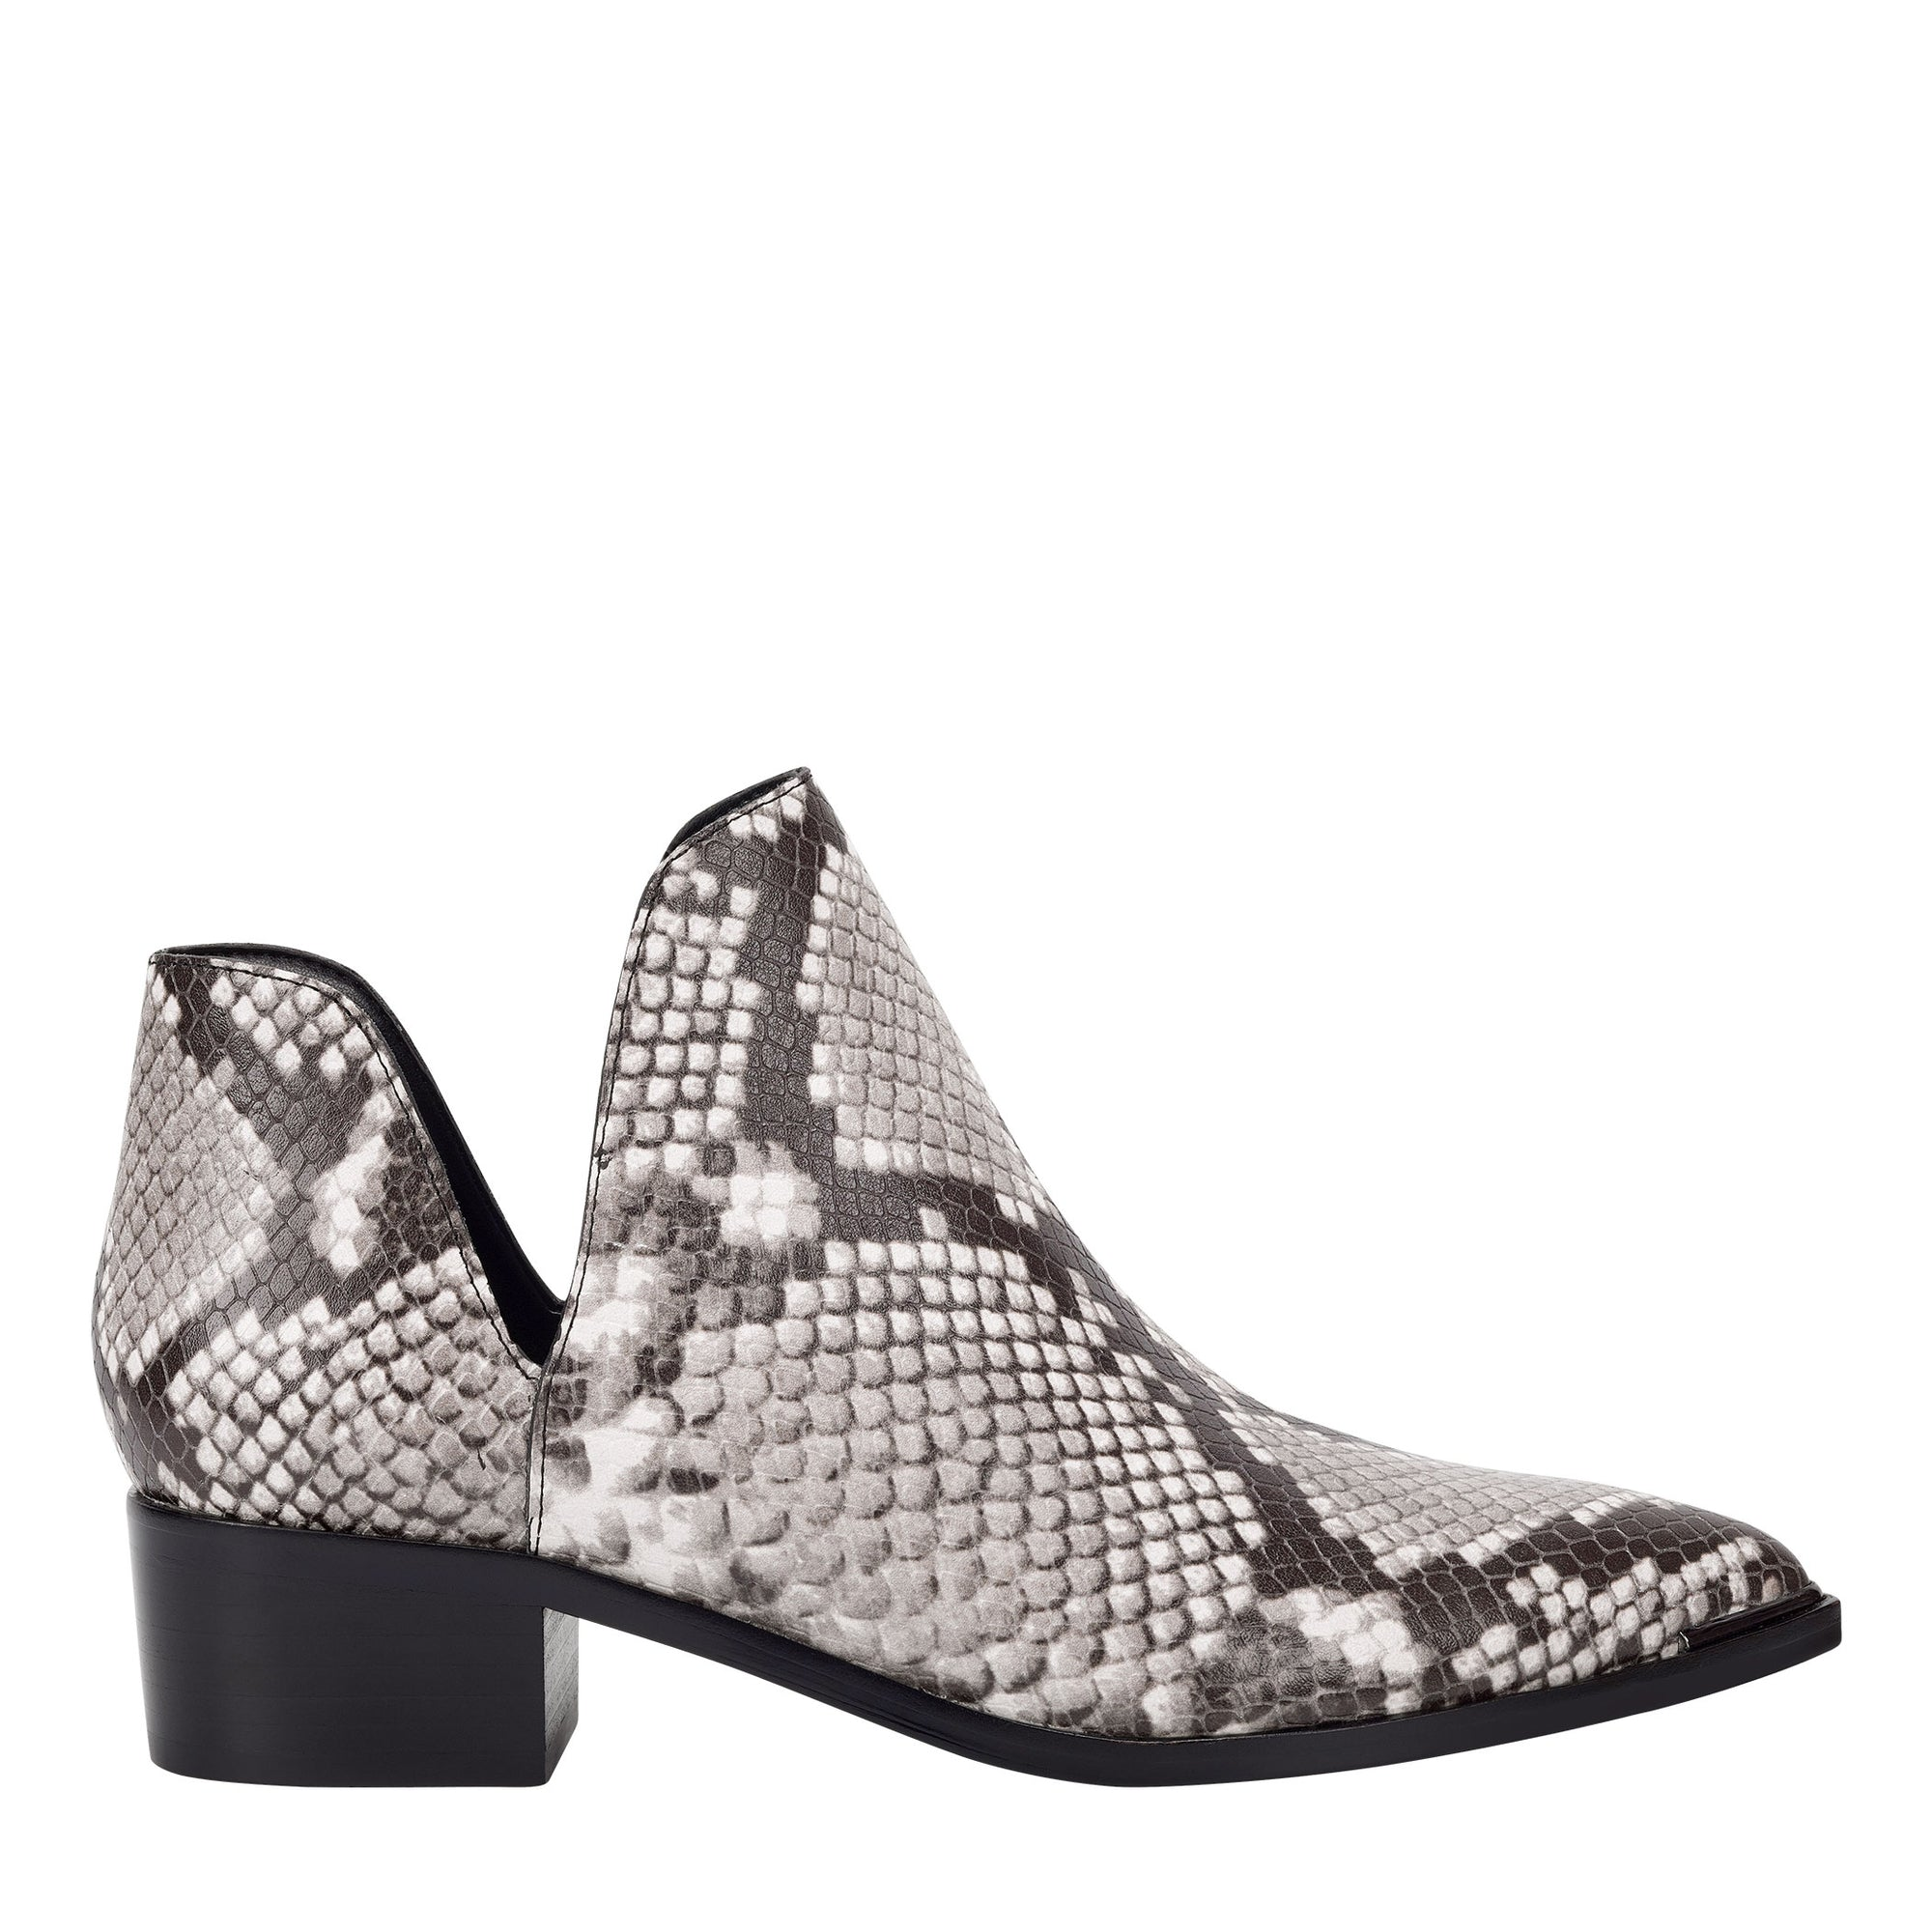 yilda-cutout-bootie-in-snake-printed-leather